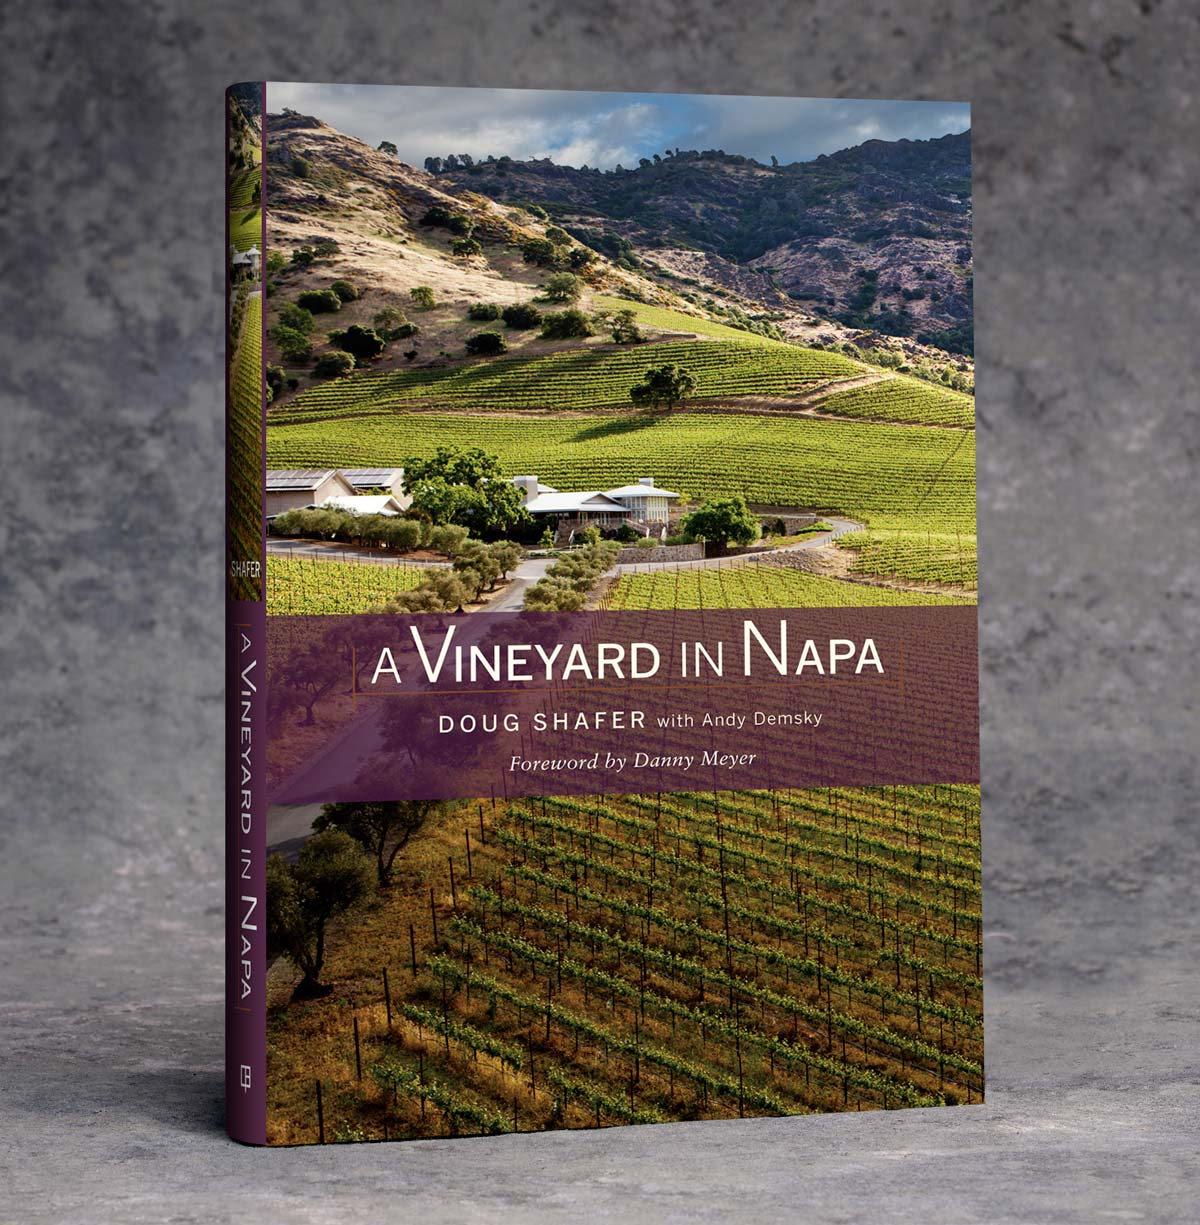 Book: A Vineyard in Napa by Doug Shafer